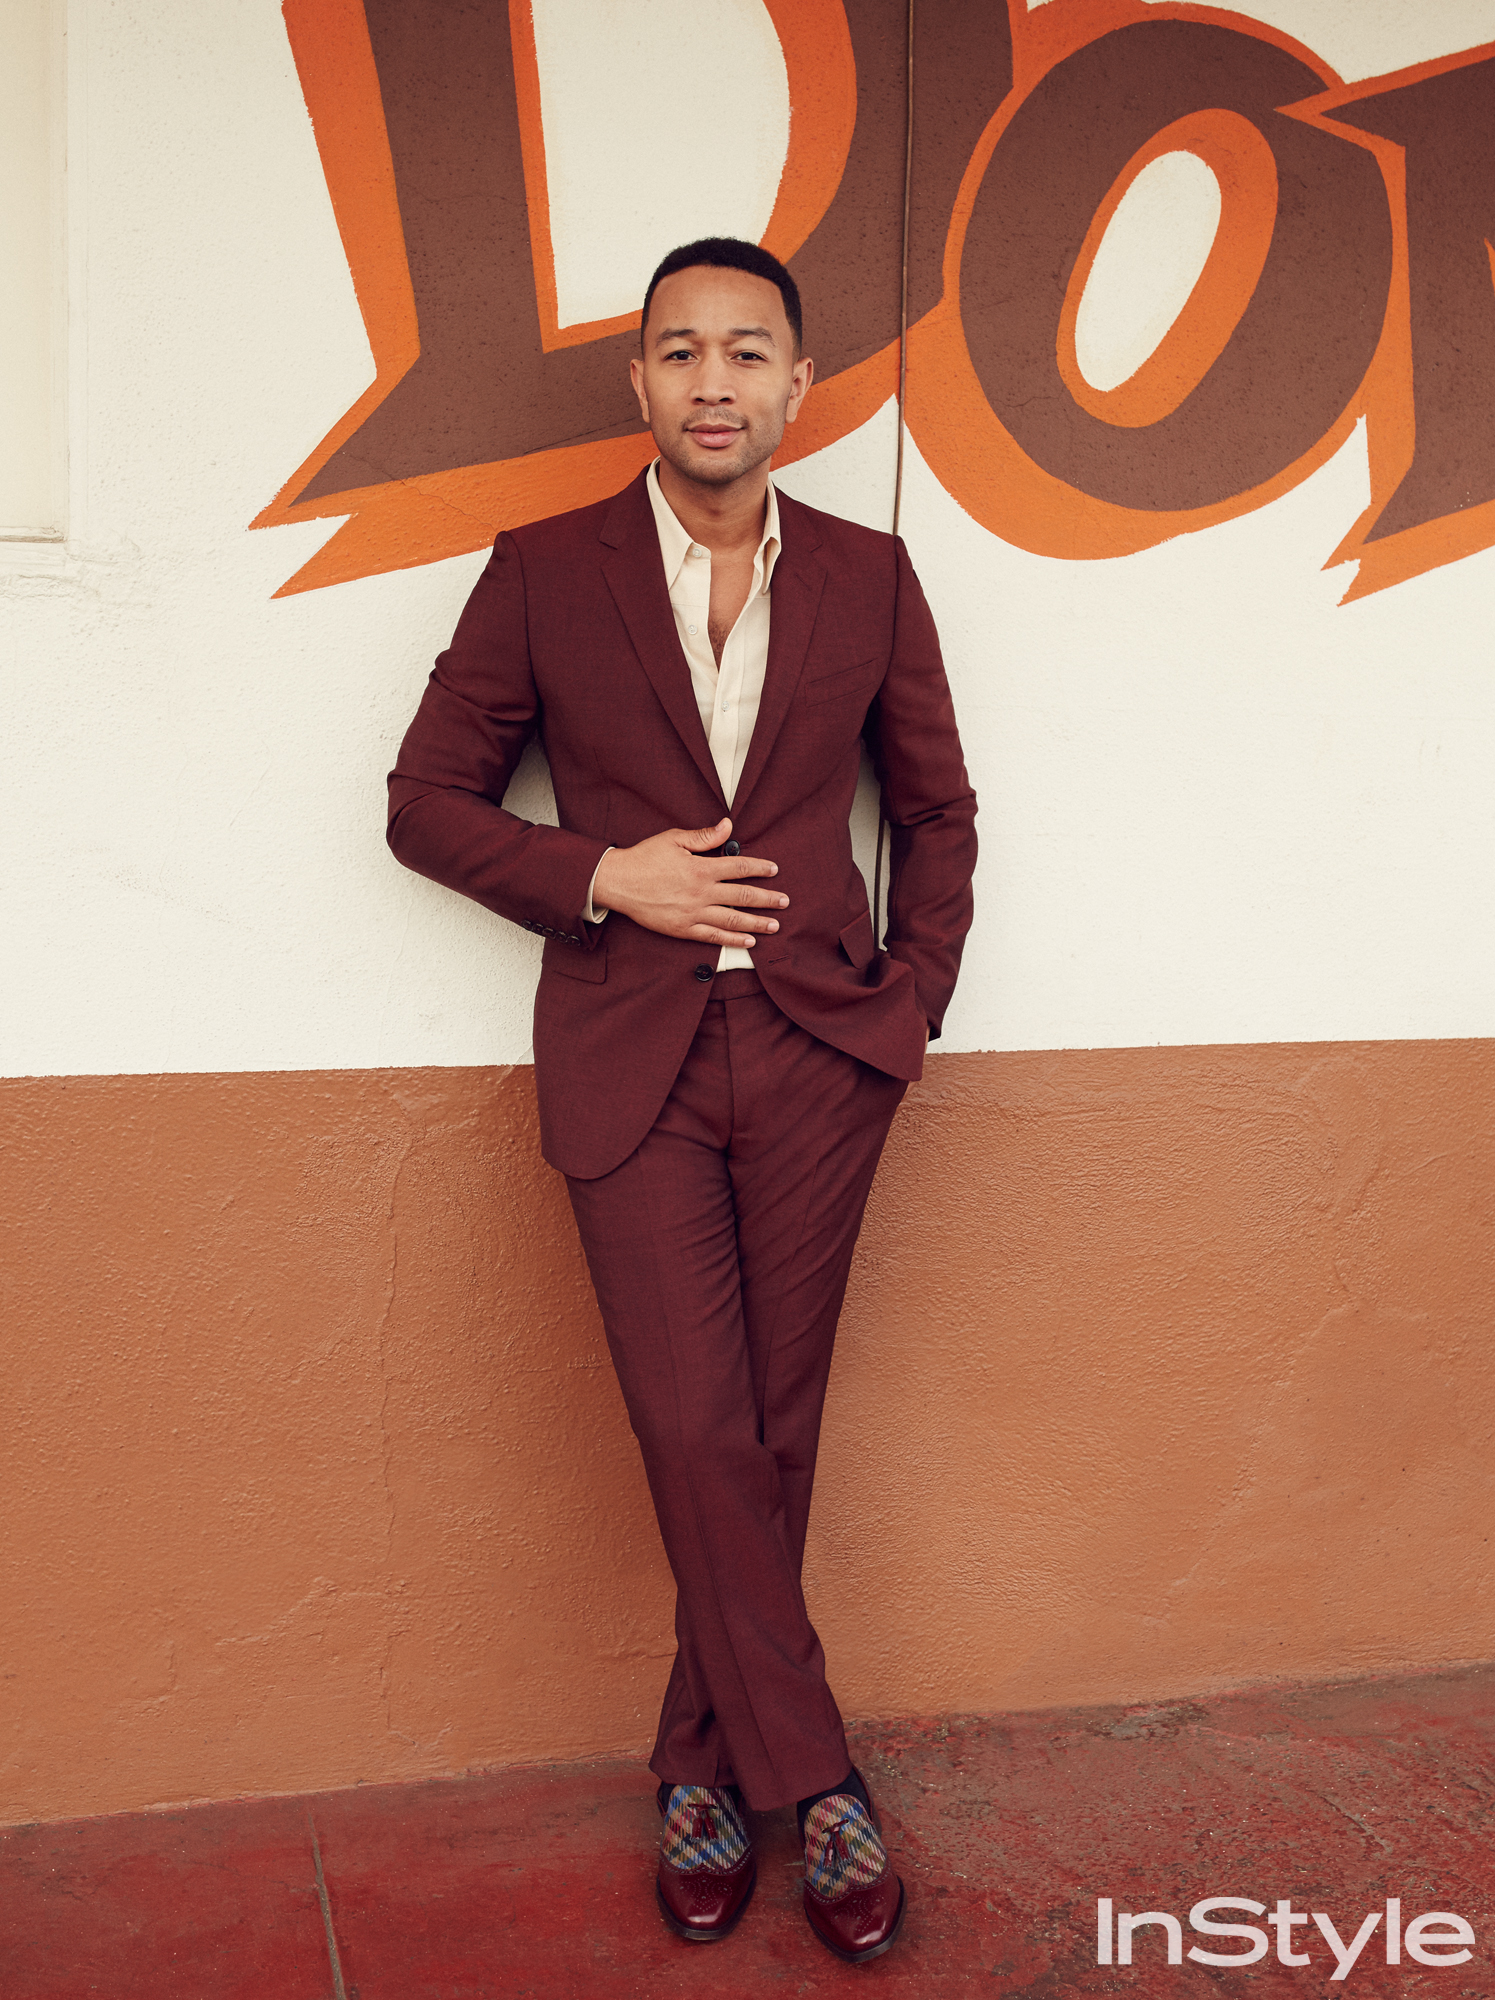 John Legend - InStyle February 2017 - SLIDE 2